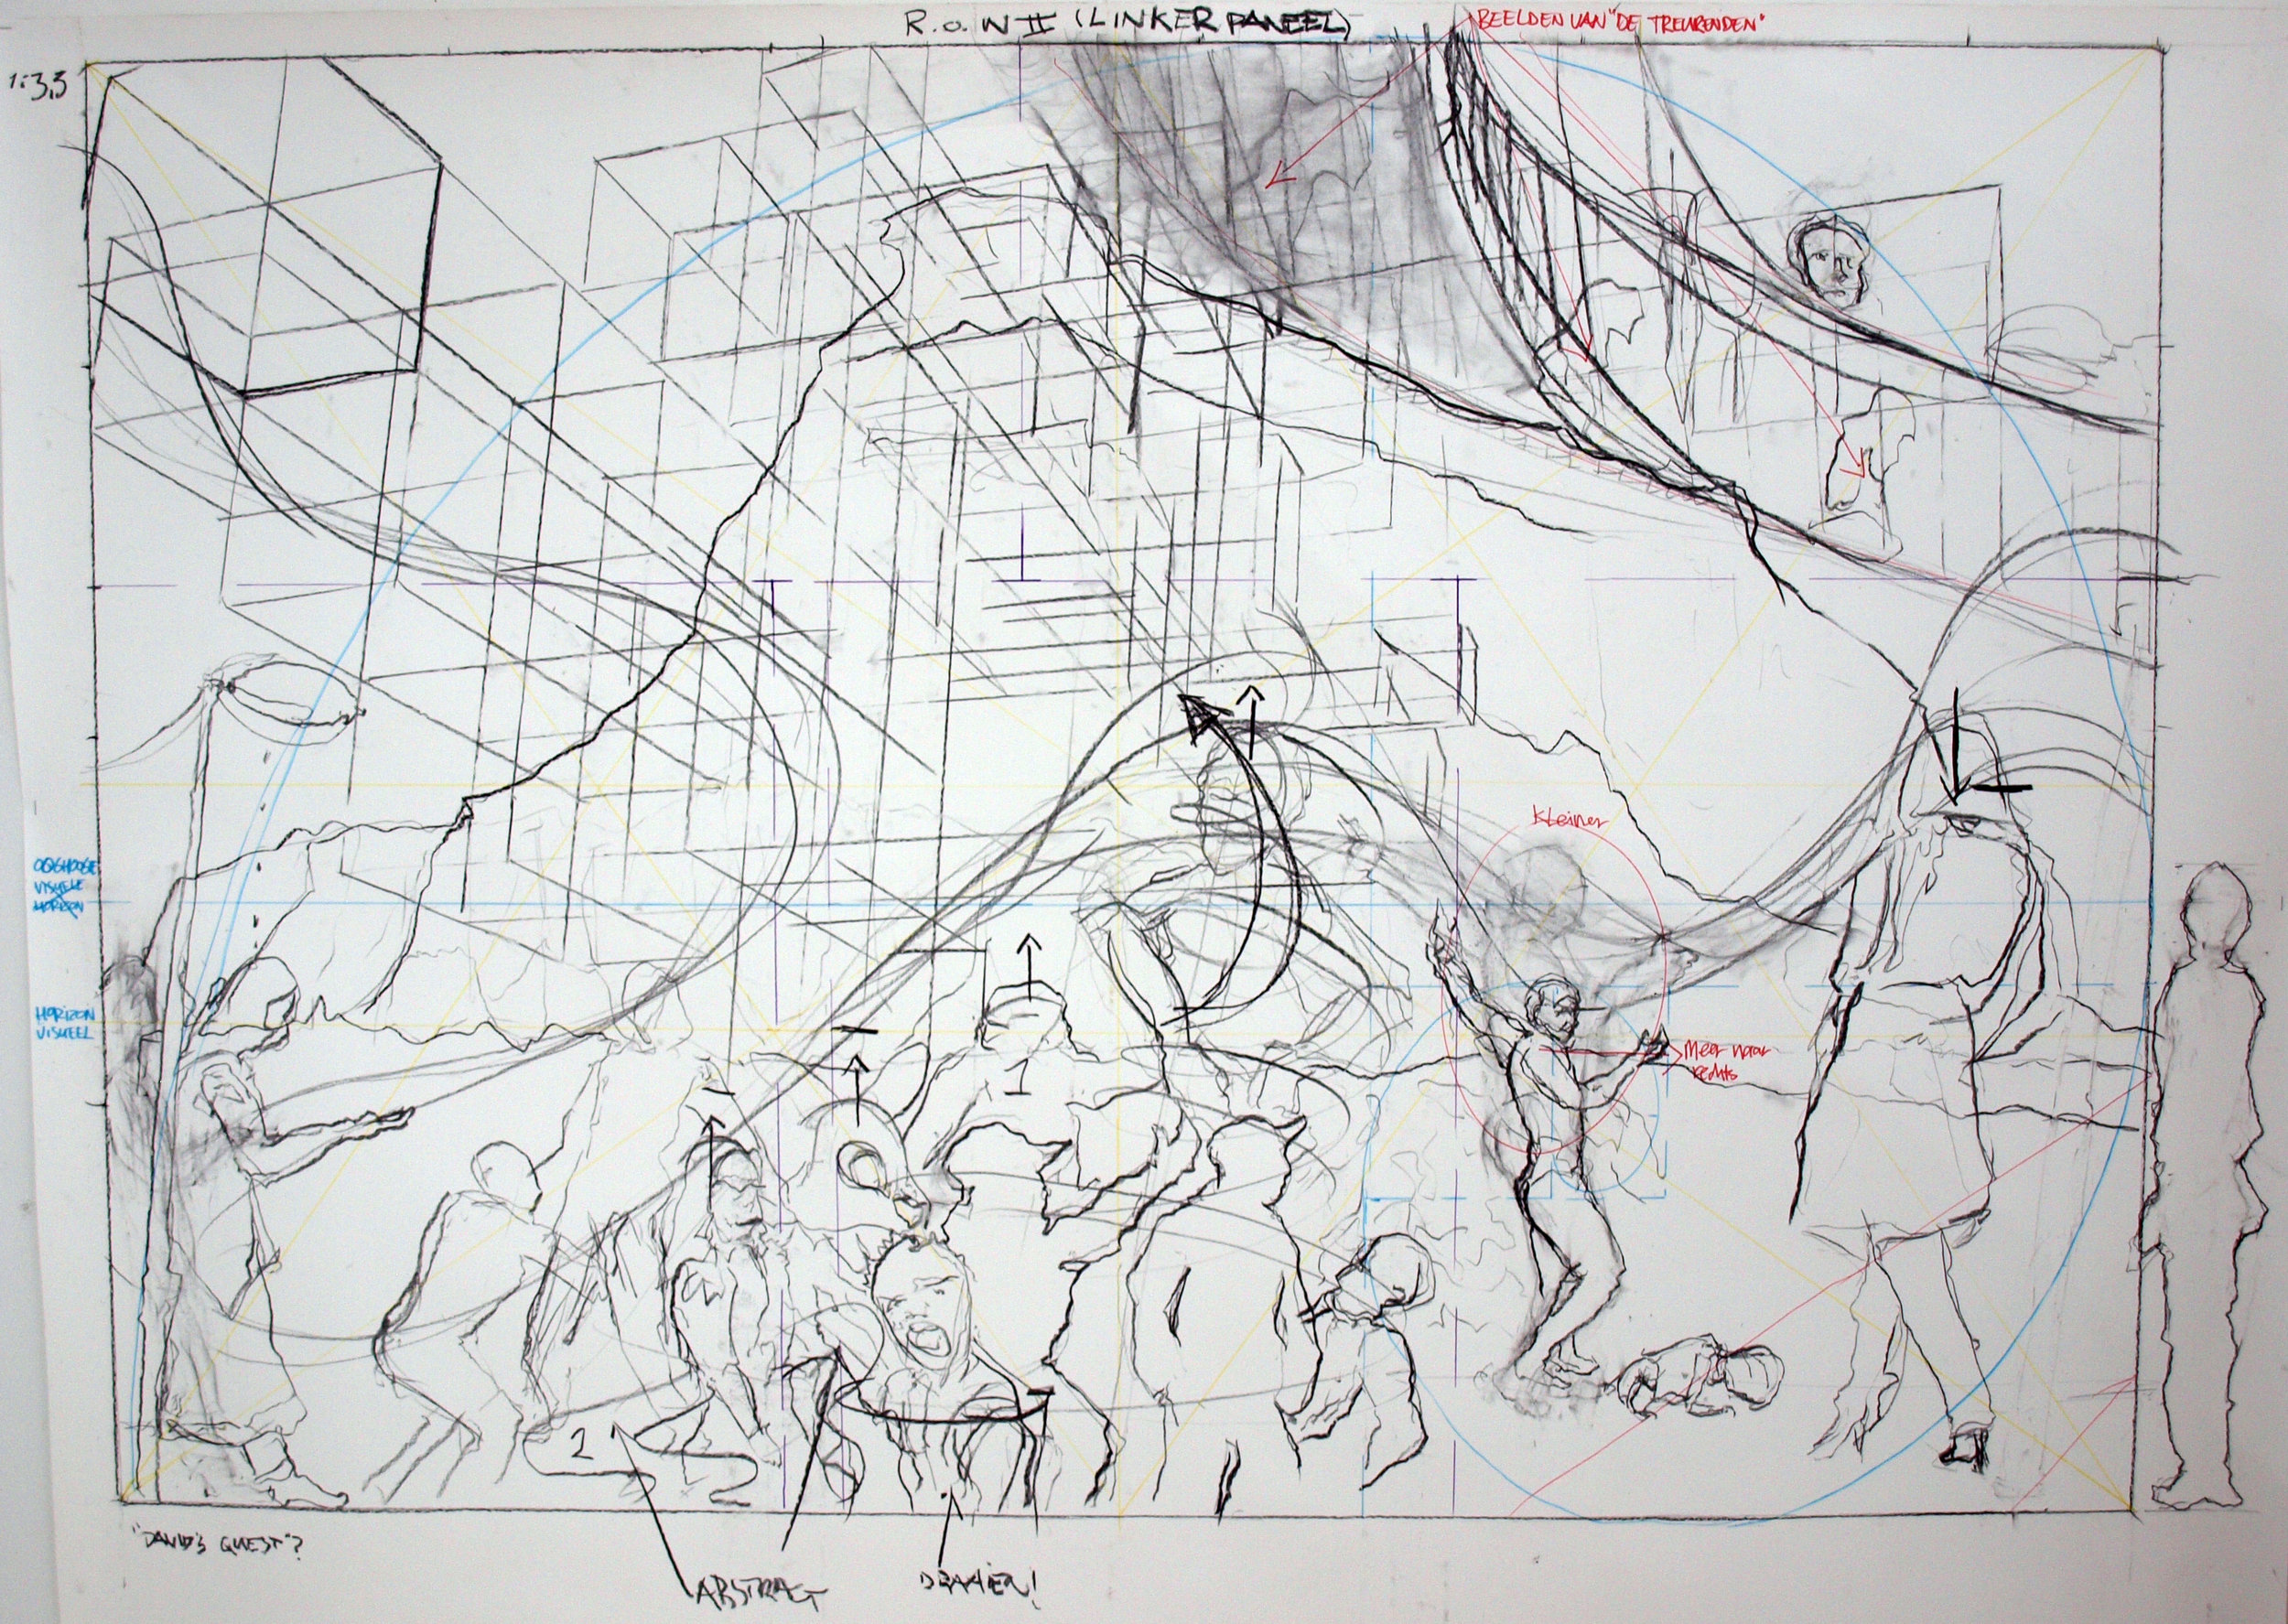 Sketch for Renaissance of Wonder II scharcoal and markers on paper scale 1:3,5 (paper size 150x197 cm) 2016